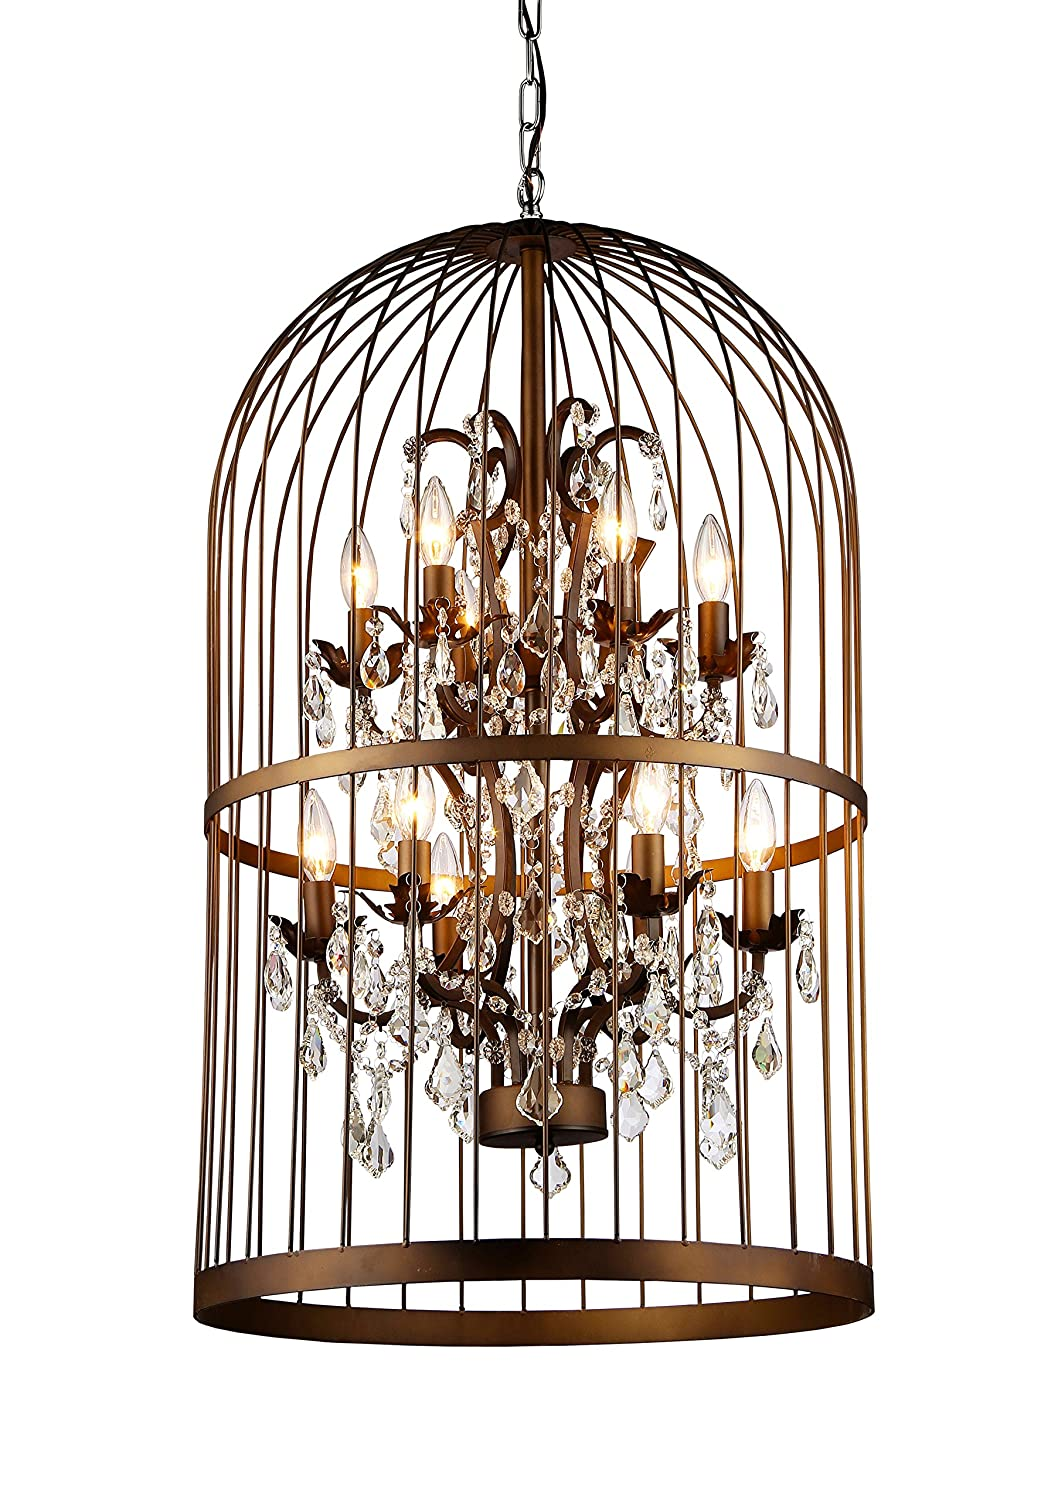 Whse of tiffany rl8058b rinee cage chandelier amazon arubaitofo Choice Image